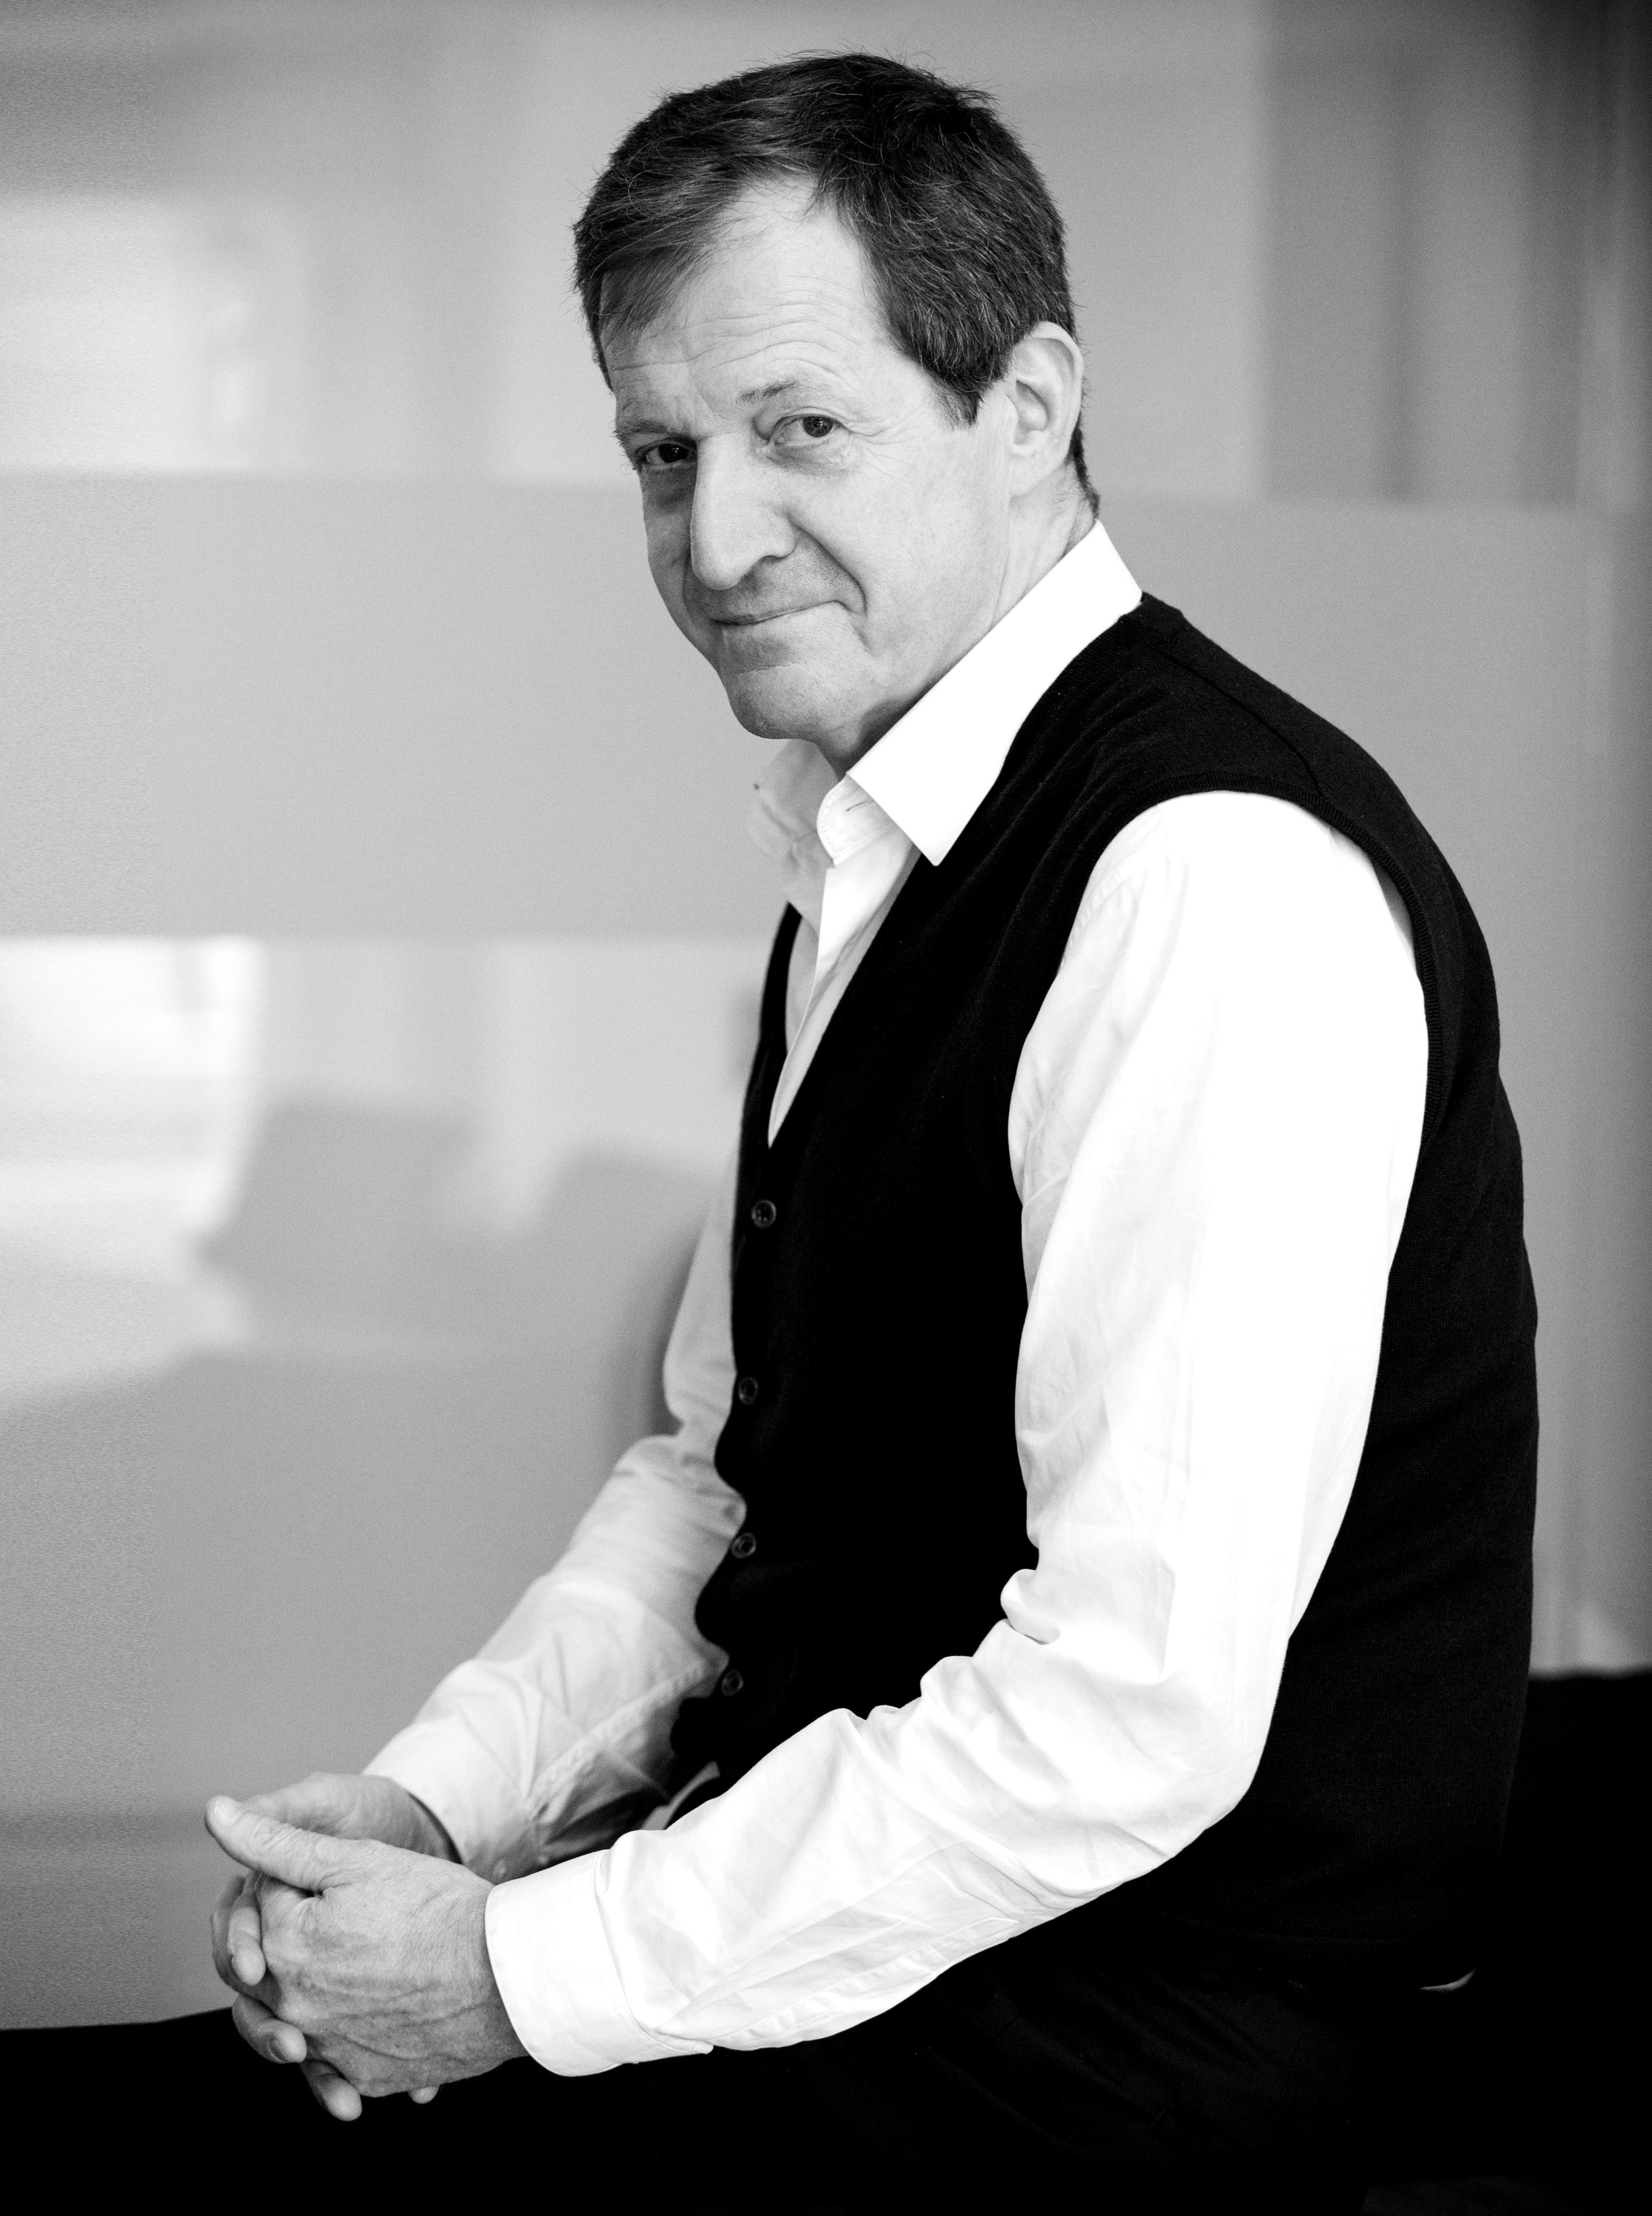 Alastair_Campbell_12179_a (2).jpg